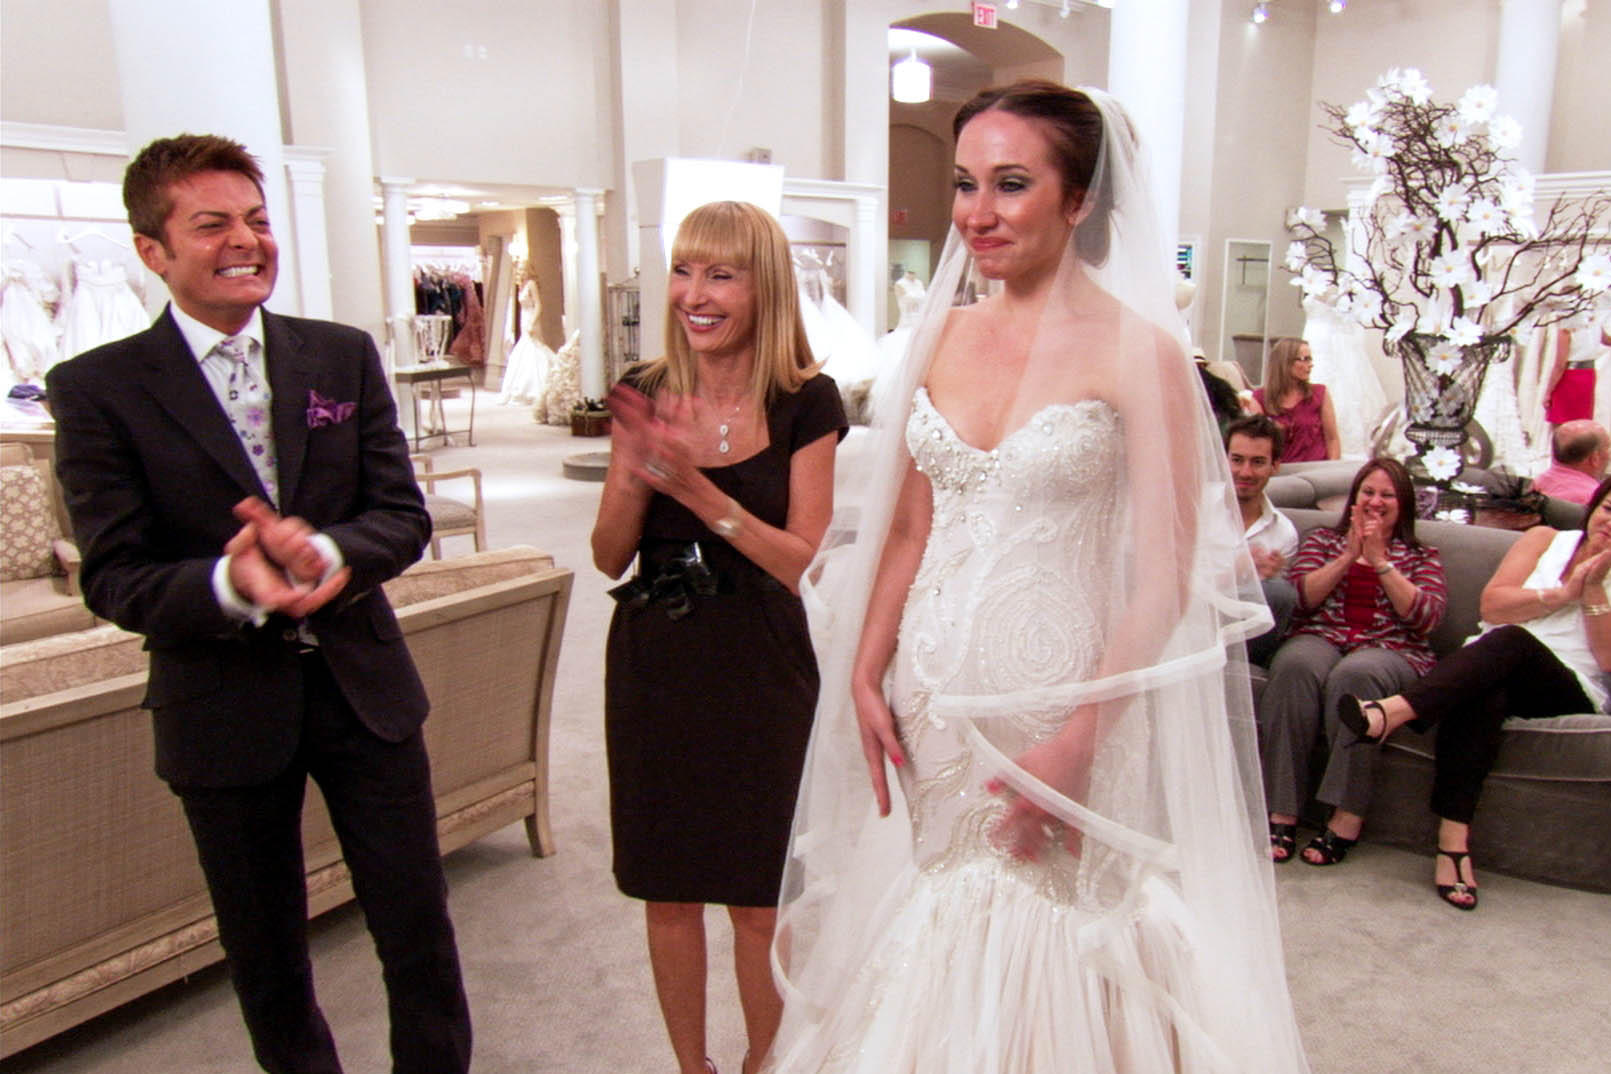 Kristis big day photo album say yes to the dress tlc kristi went to kleinfeld to find her perfect dress and chose a stunning 6600 mark zunino ombrellifo Images